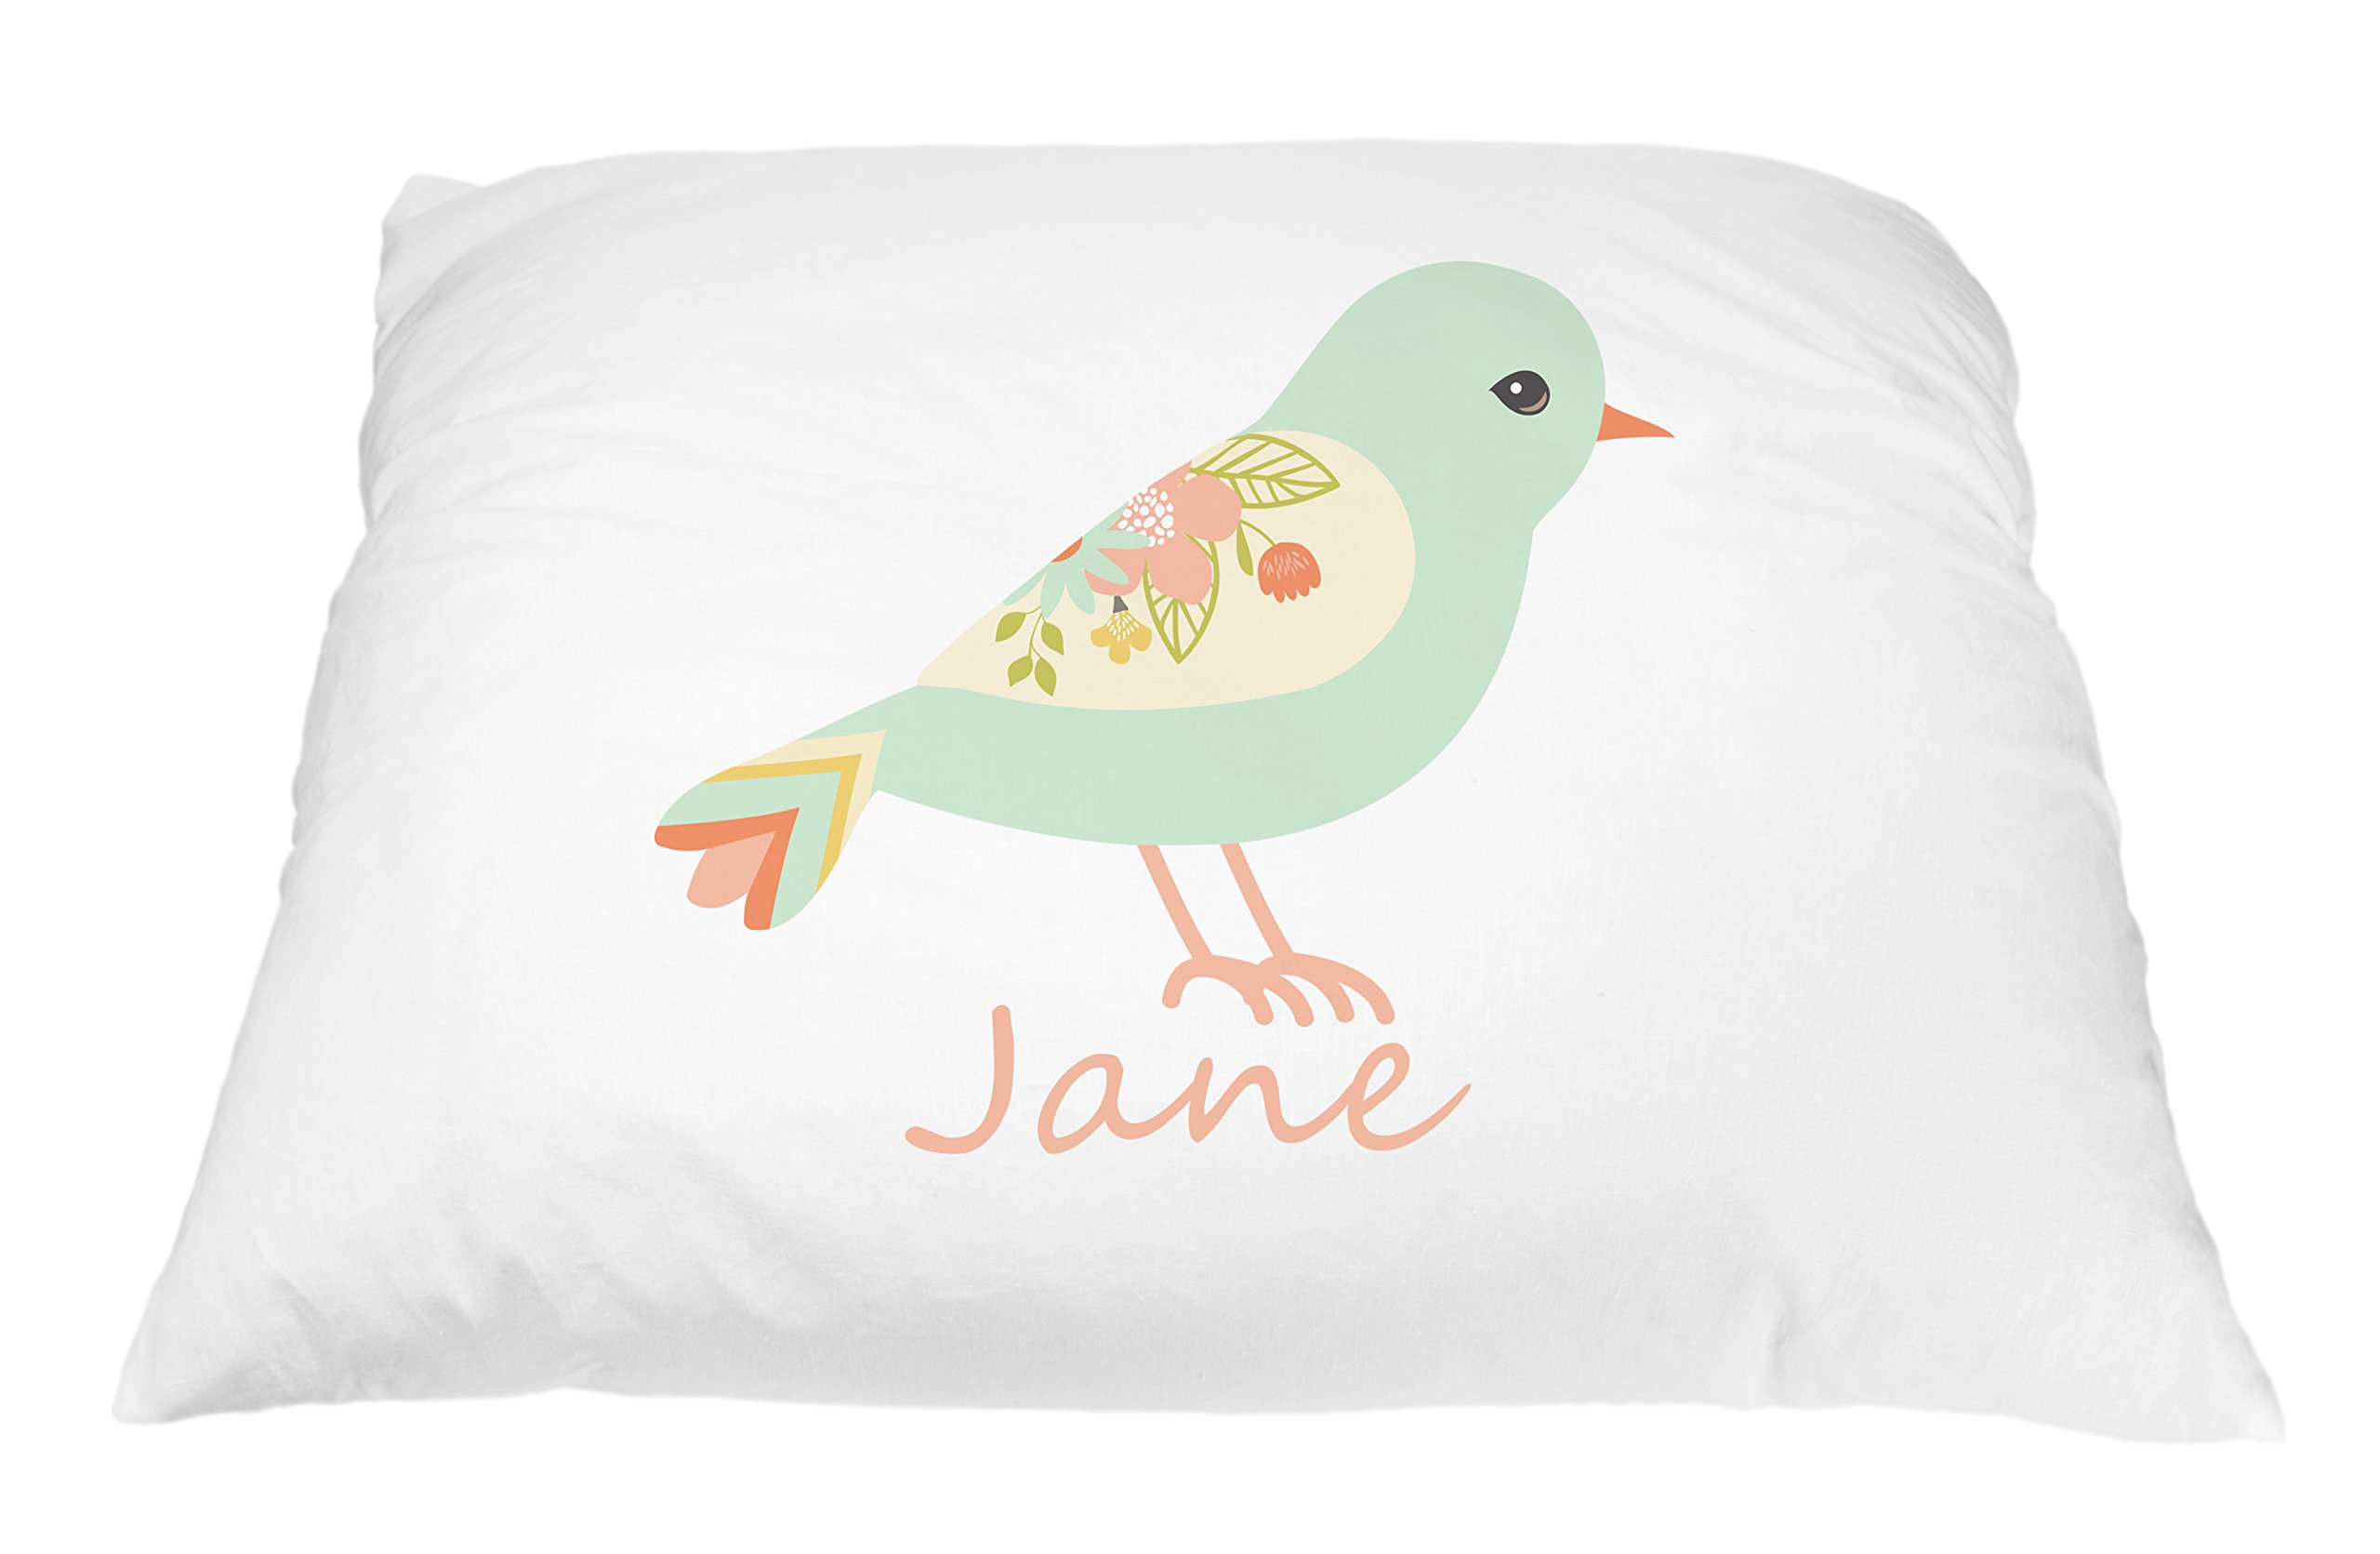 Personalized Kid's Turqoise Bird Pillowcase Microfiber Polyester Standard 20 by 30 Inches, Bird Pillow Cover, Unique Nature Gift for Kids, Personalized Gifts For Kids, Bird Décor Nature Pillow